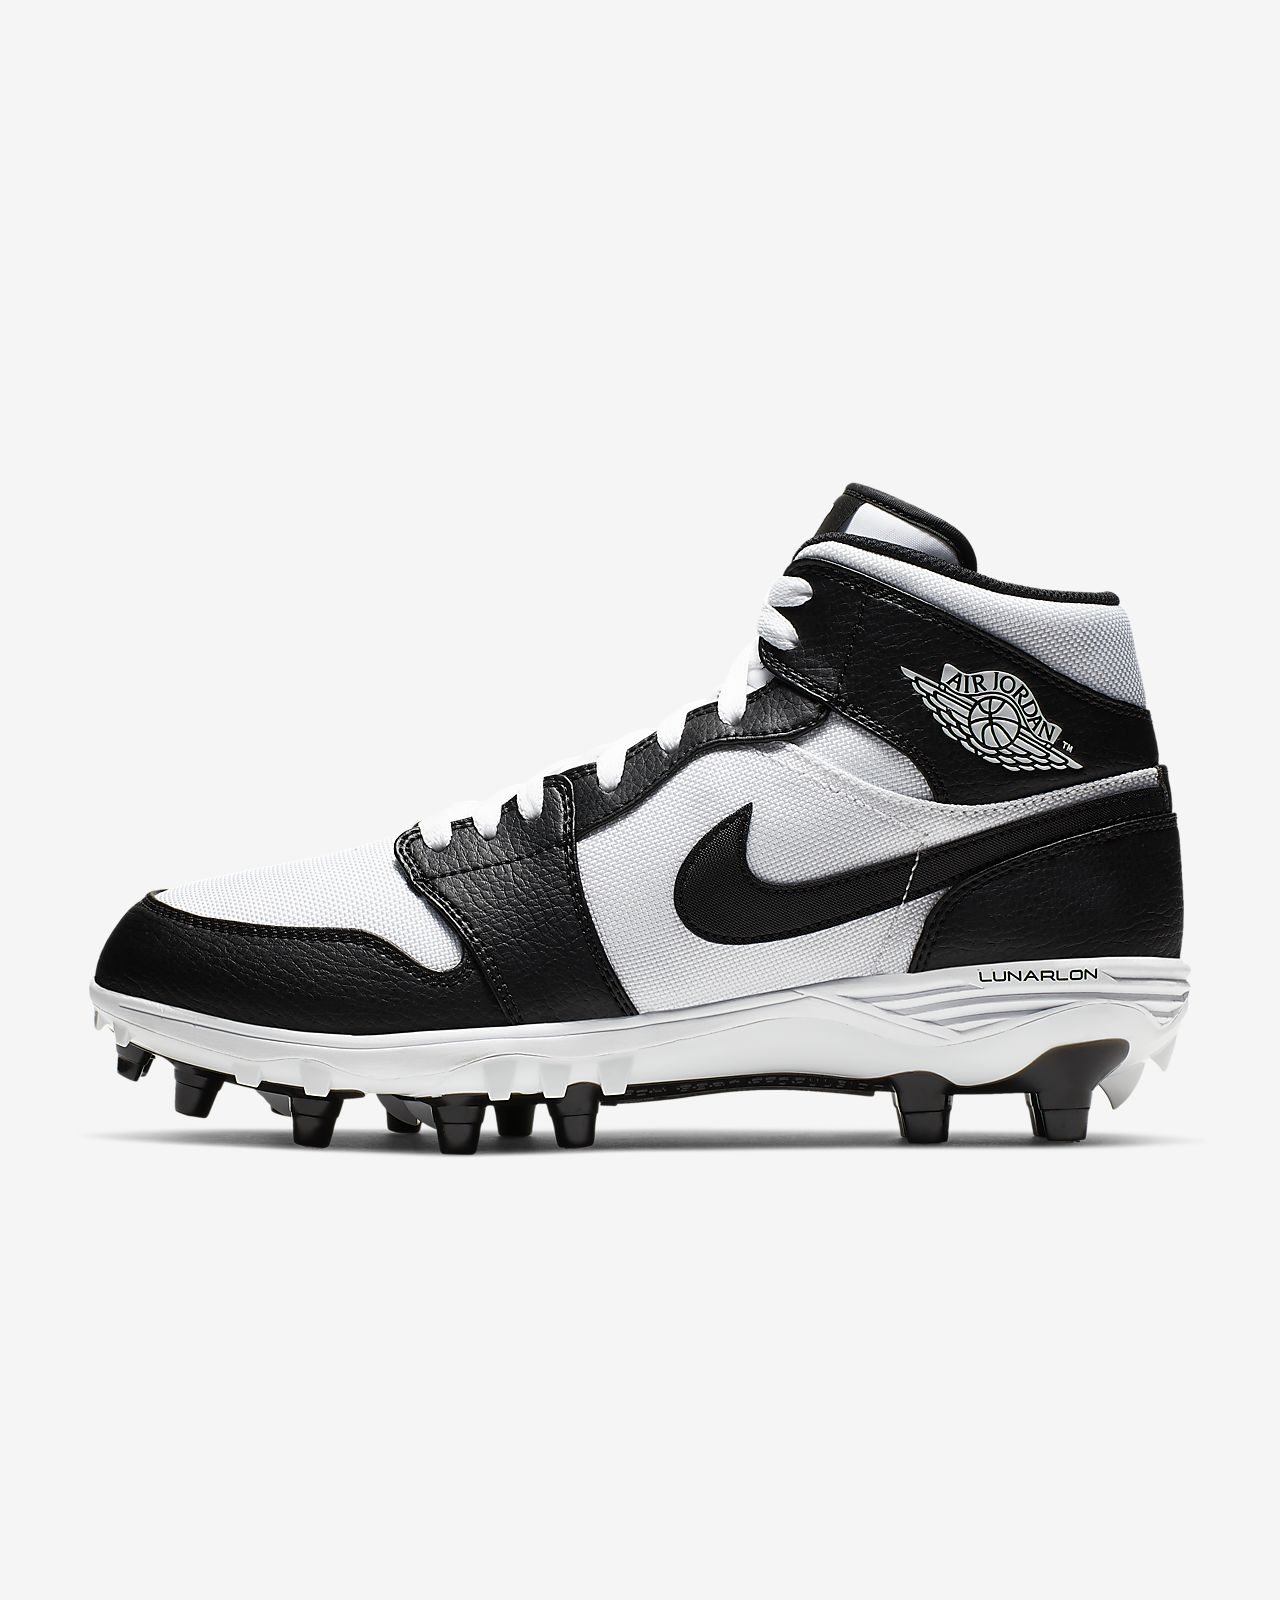 5a12b562a Jordan 1 TD Mid Men s Football Cleat. Nike.com